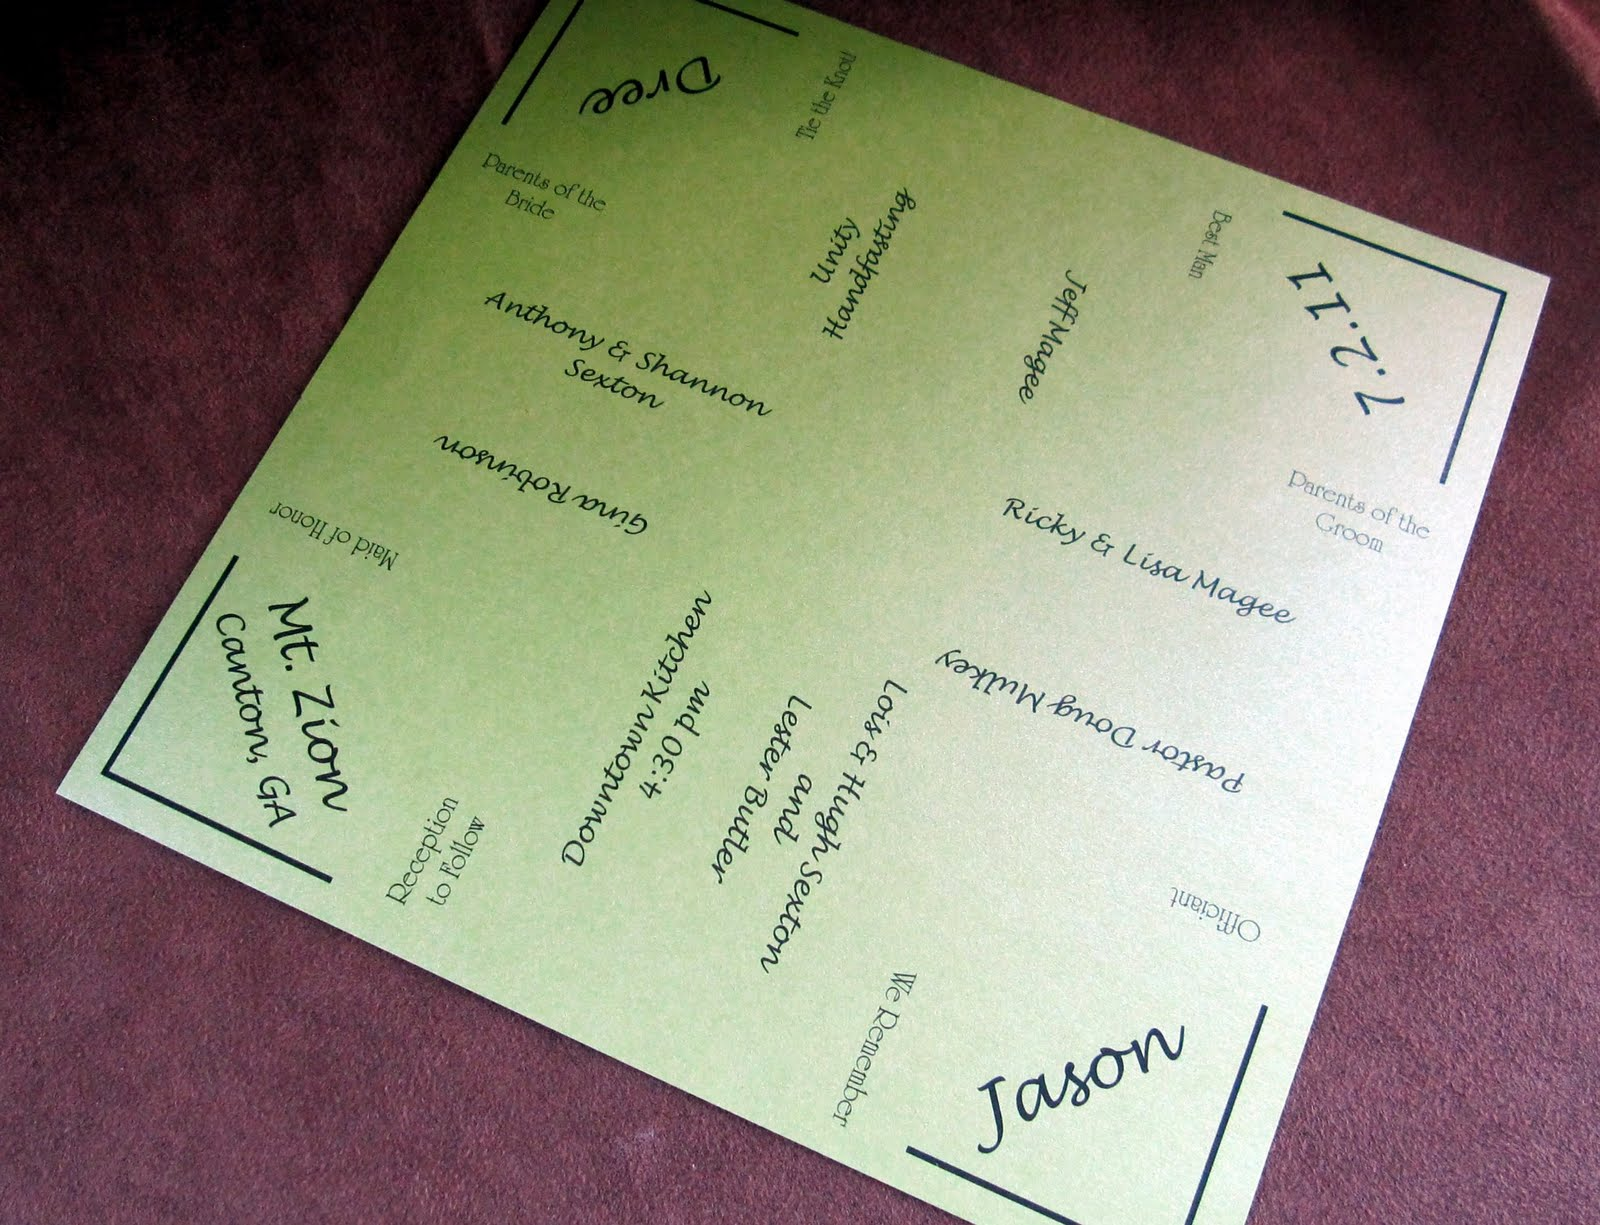 Scrapping Innovations: Dree and Jason Cootie Catcher Wedding programs